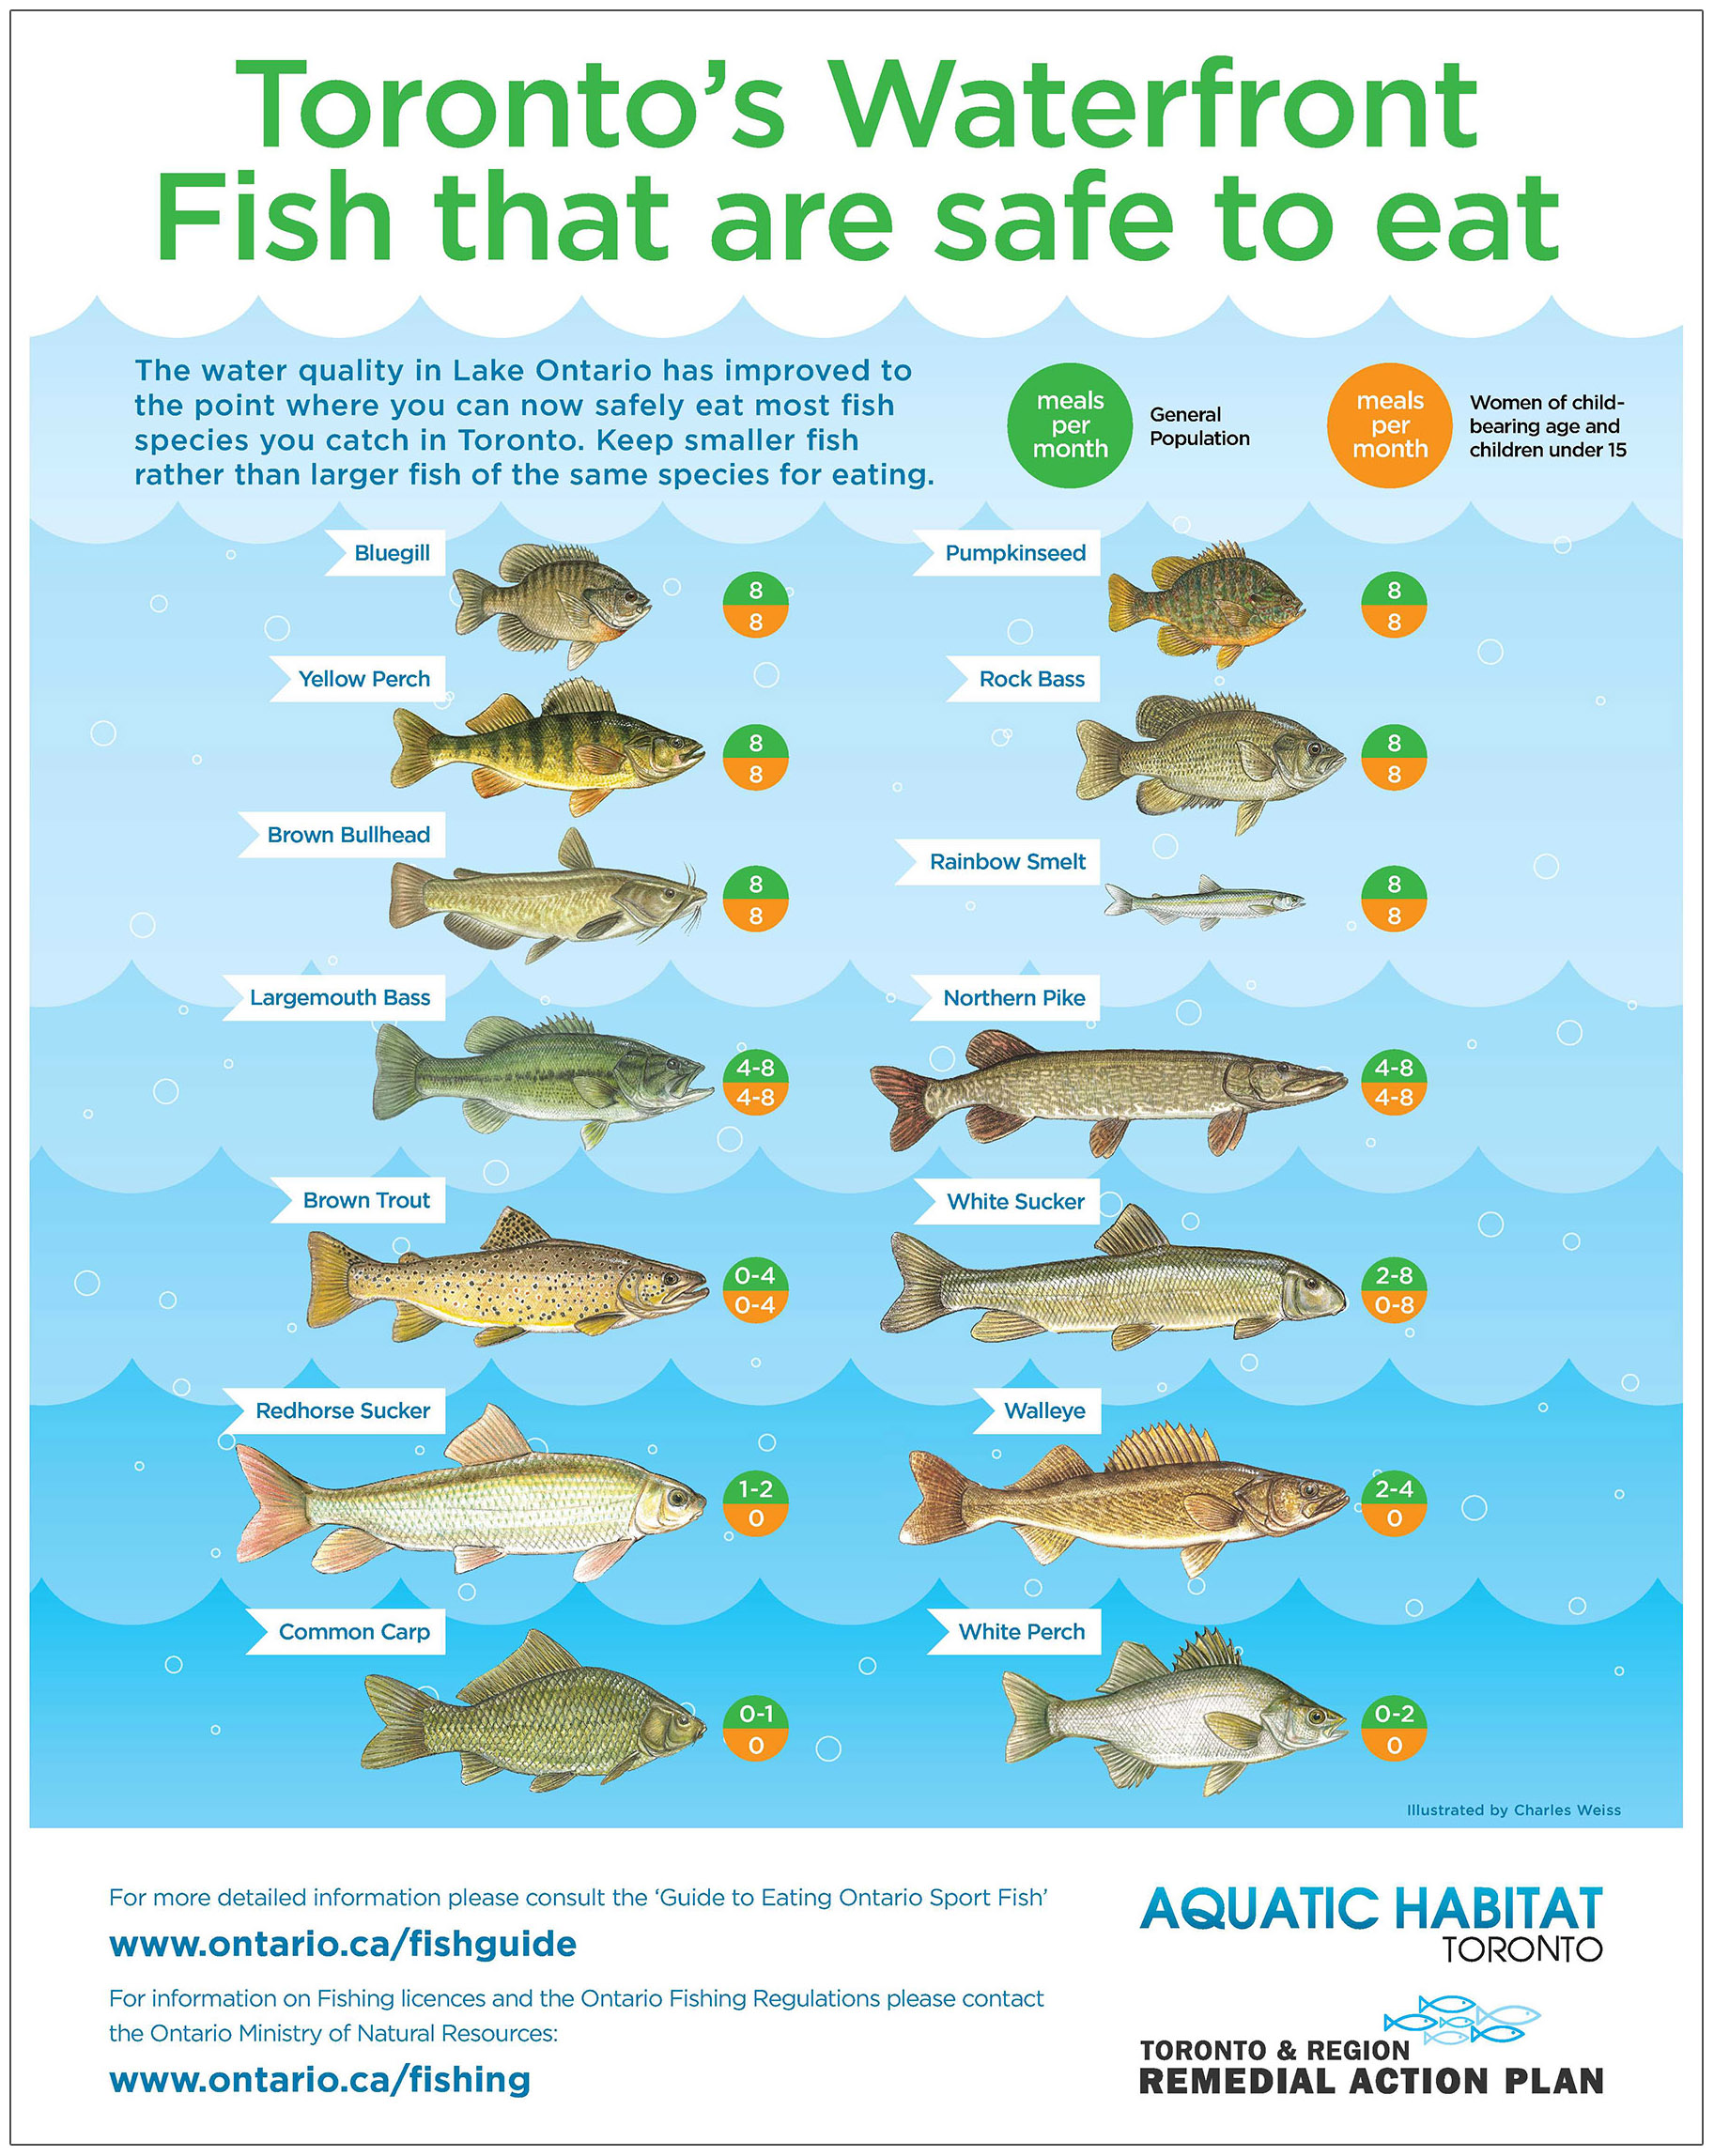 guide to fish from the Toronto waterfront that are safe to eat